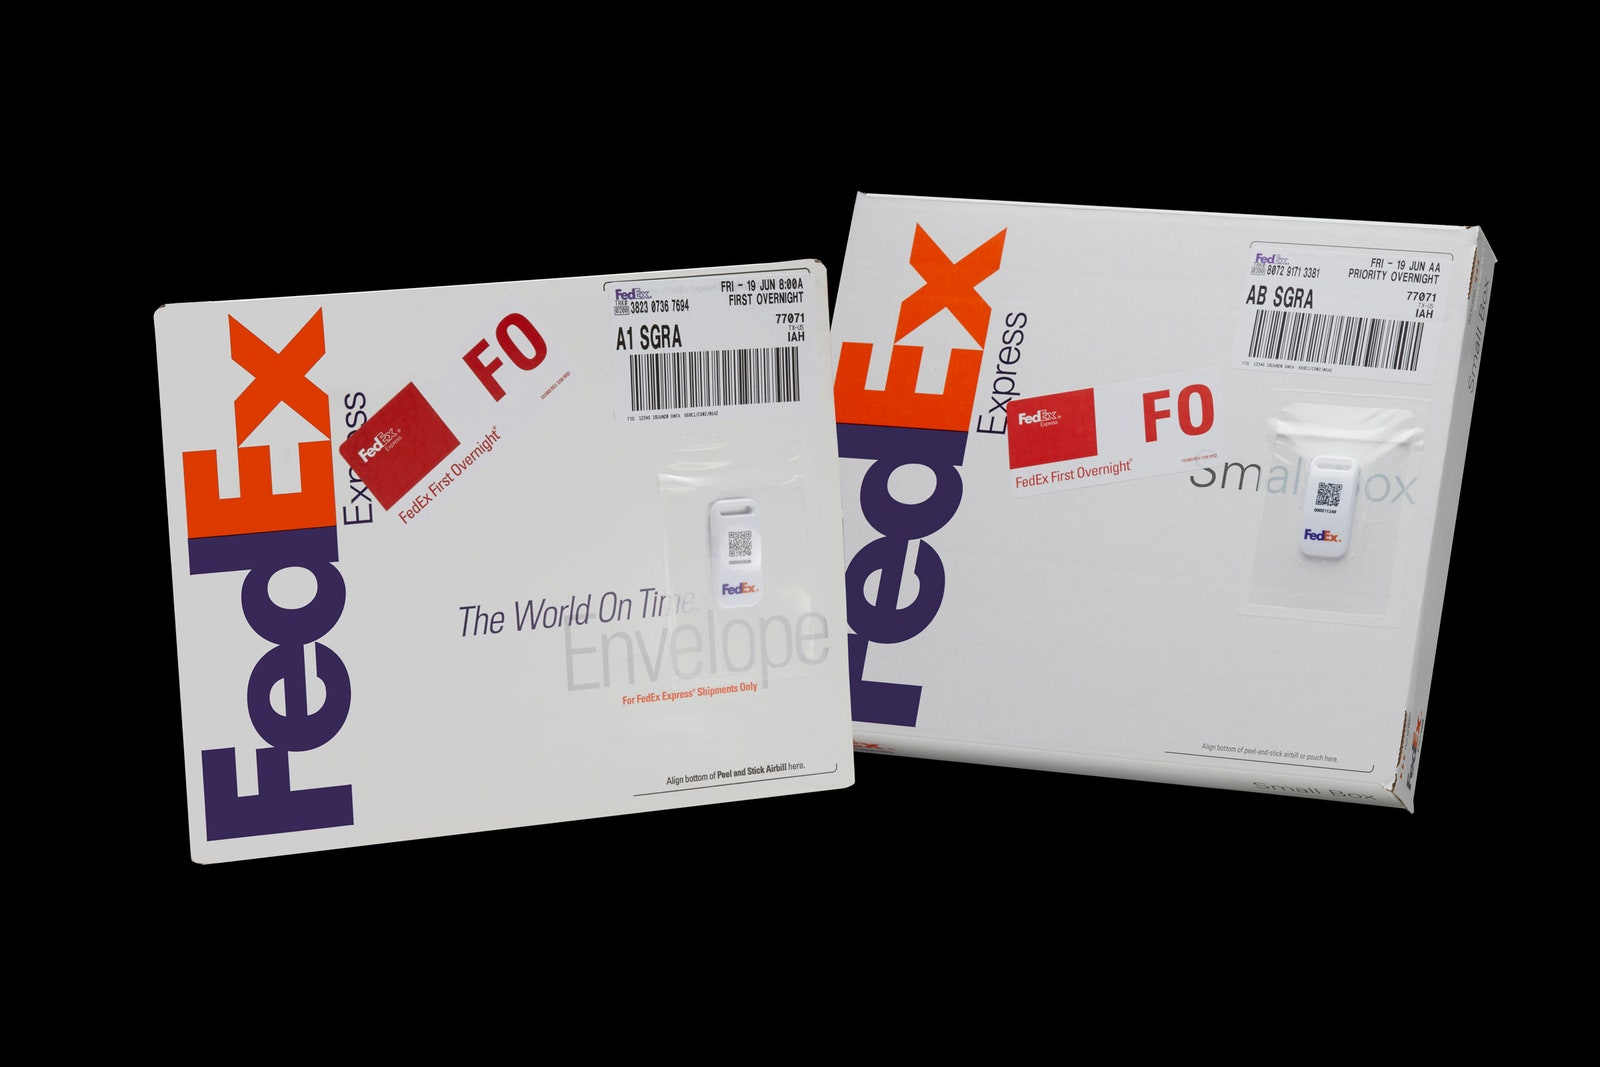 fedex packages with tags